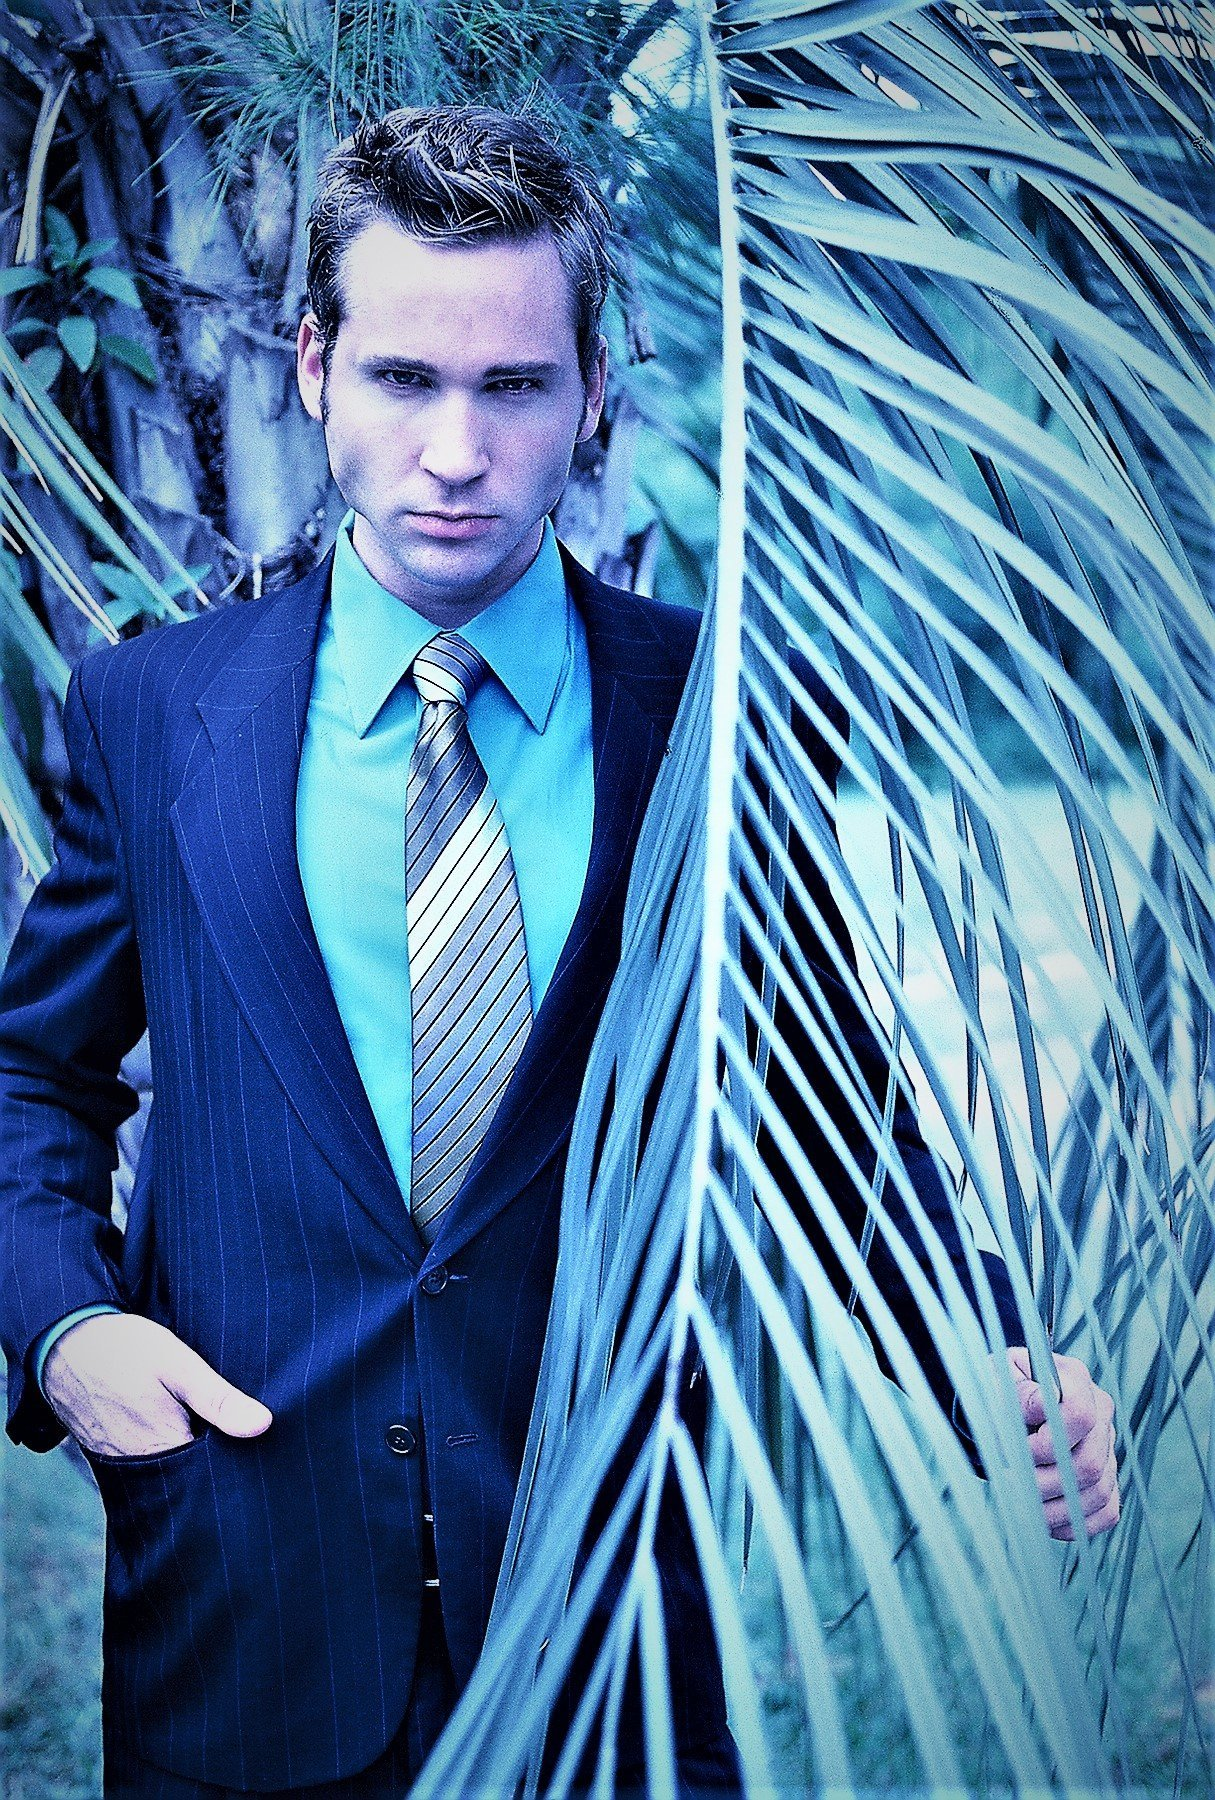 My convention discovery DANNY BOPP-  NYC, LA model, actor, Nascar series driver, stunt driver, starred in several national commercials.